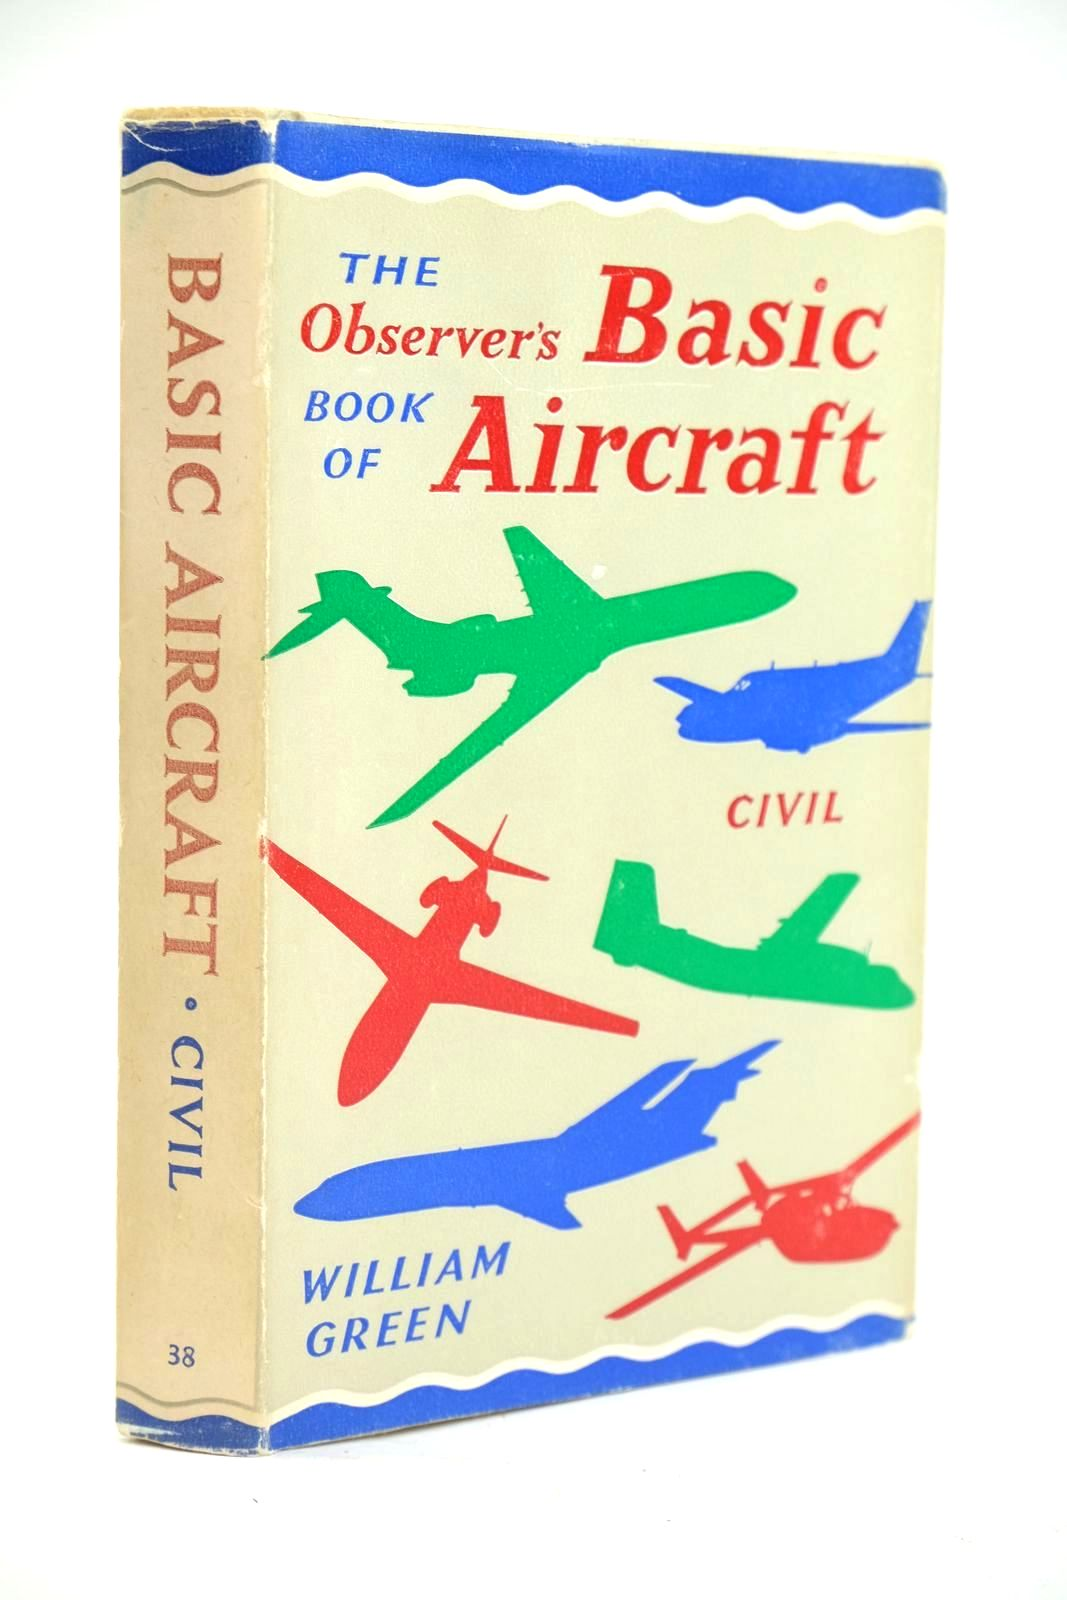 Photo of THE OBSERVER'S BOOK OF BASIC AIRCRAFT: CIVIL- Stock Number: 1319657